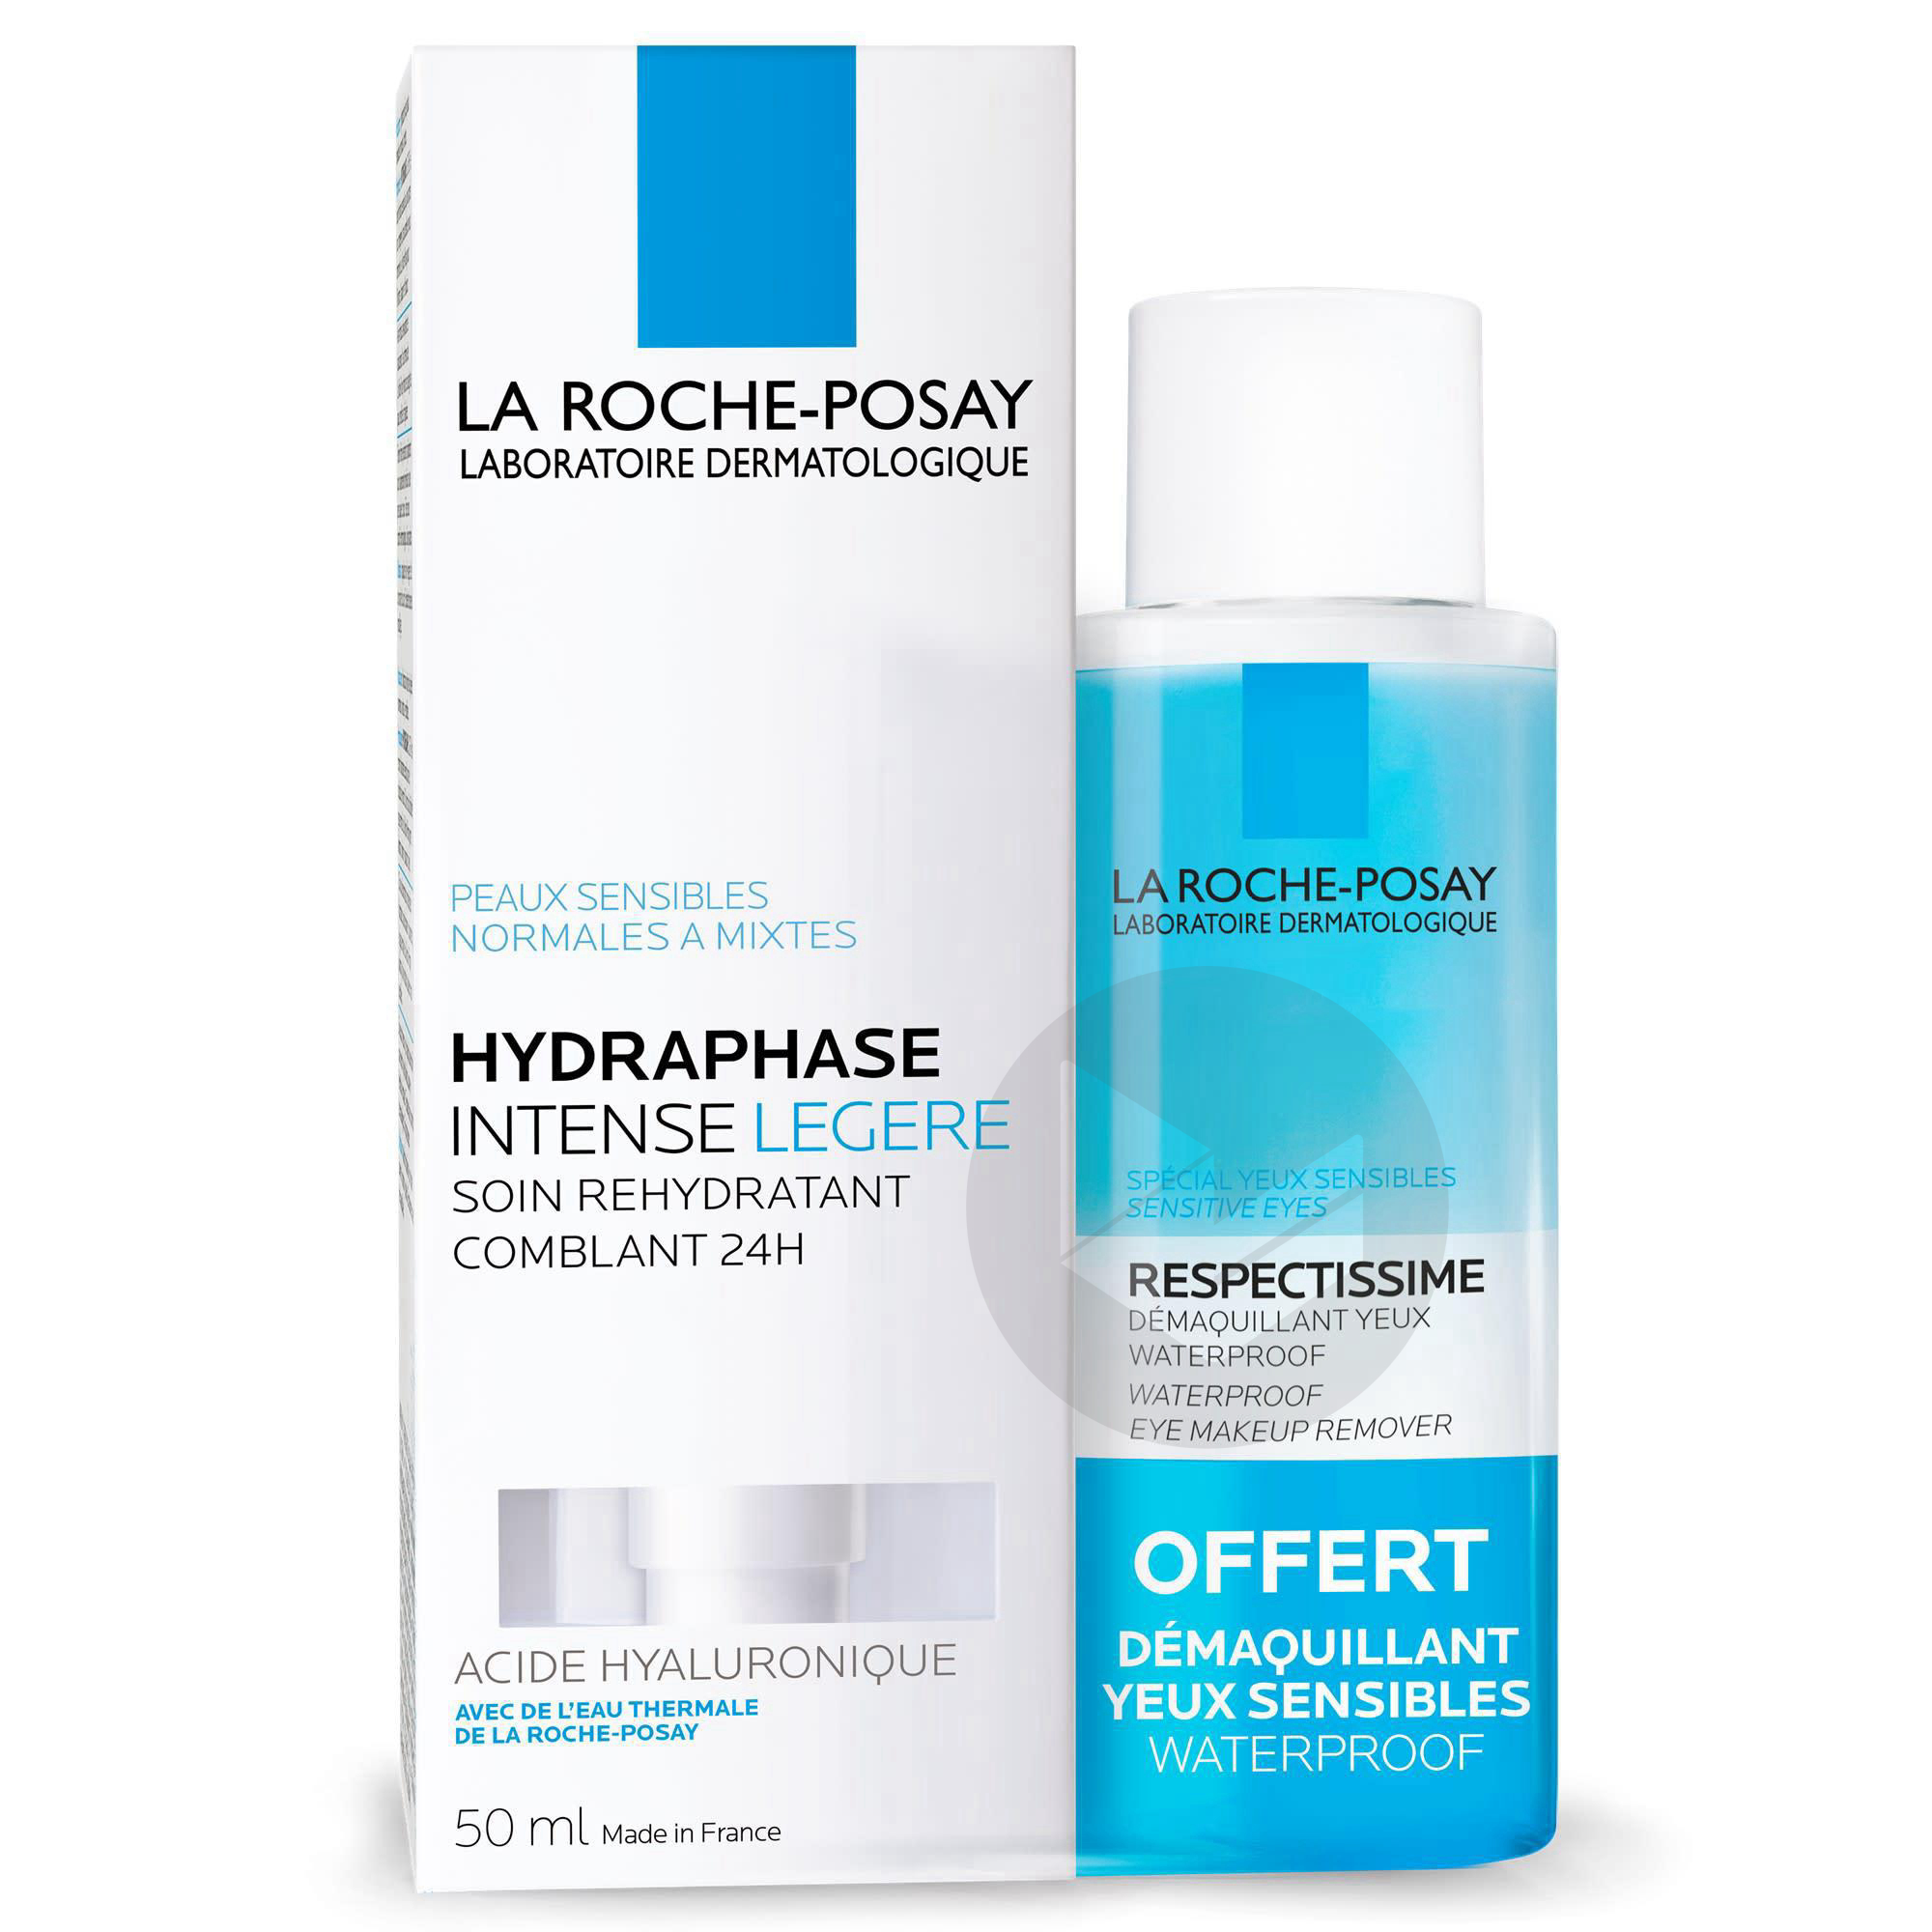 Hydraphase Intense Légère+ Respectissime Démaquillant Yeux Waterproof 50ml Offert